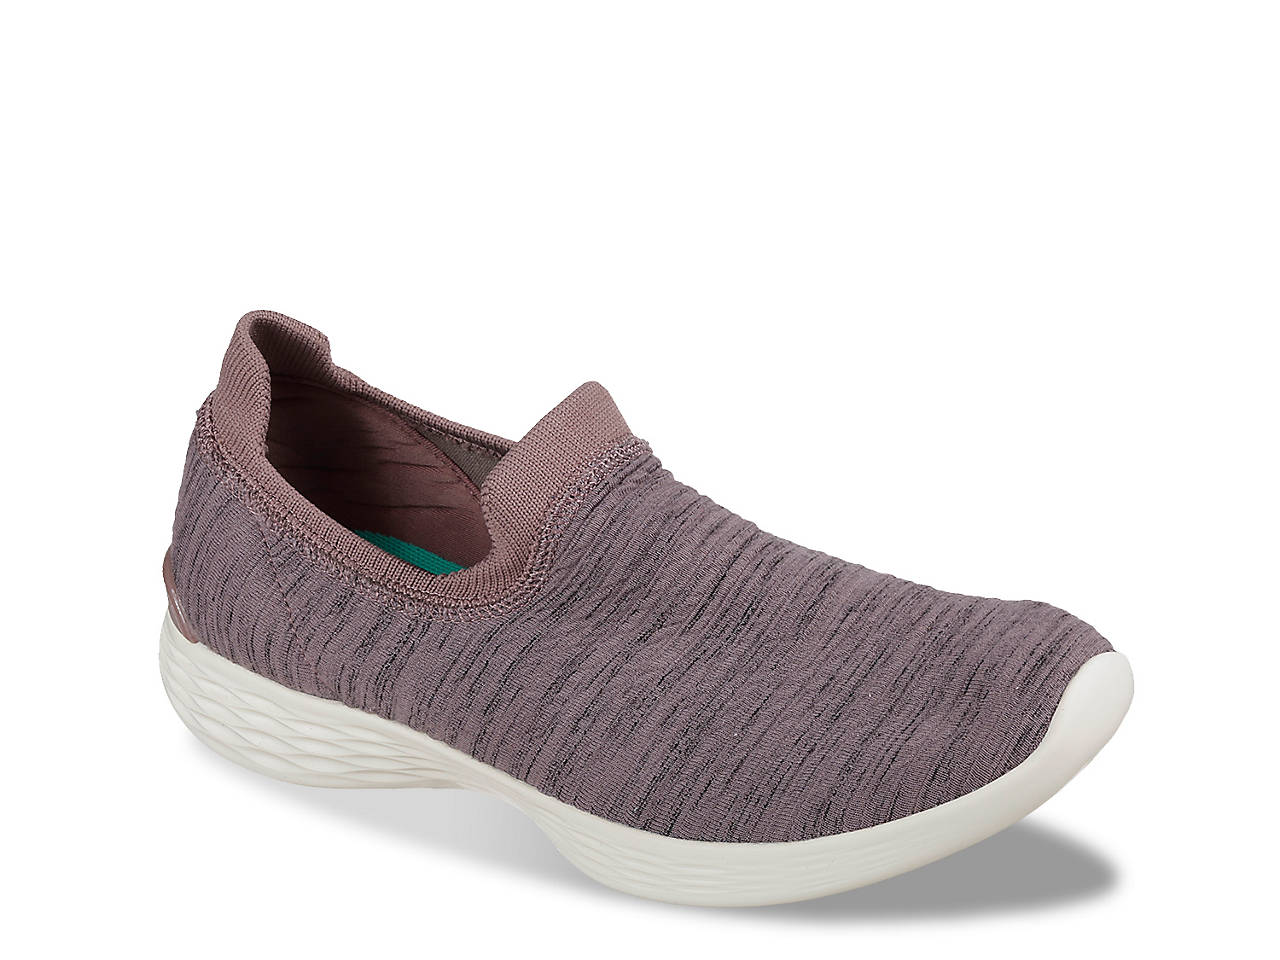 purchase newest select for genuine shop for newest Define Grace Slip-On Sneaker - Women's